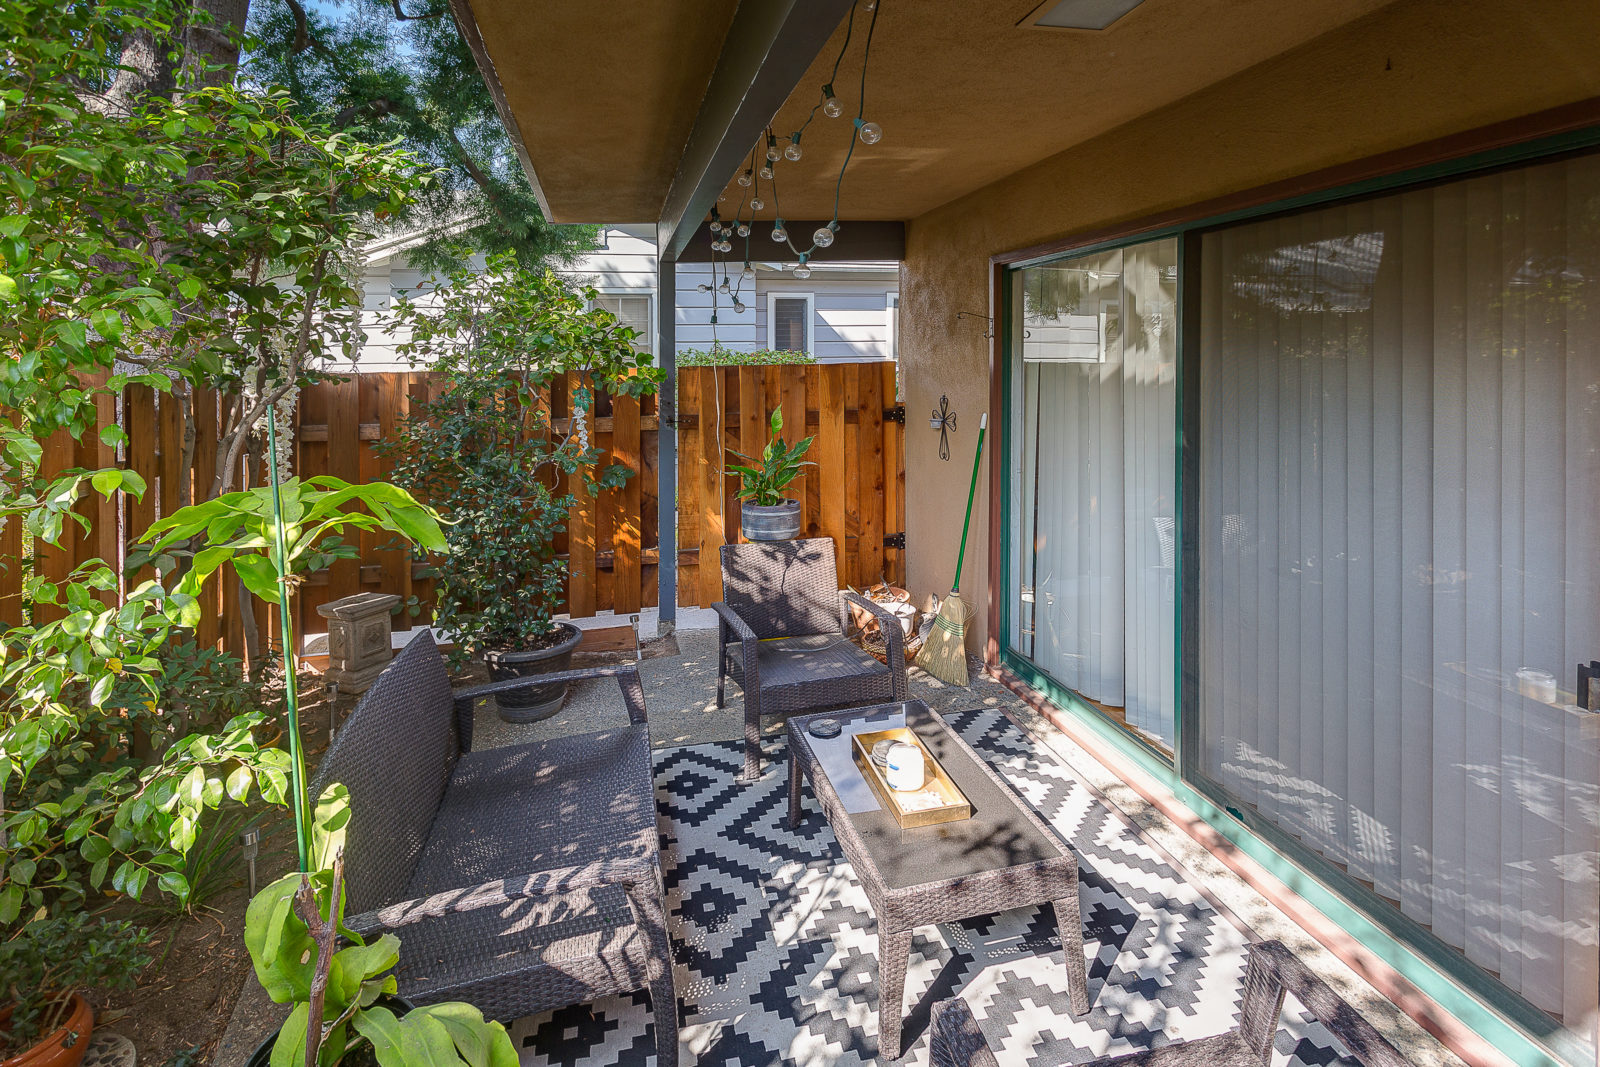 Patio of 6 unit apartment building for sale at 315 Pleasant St, Pasadena, CA 91101